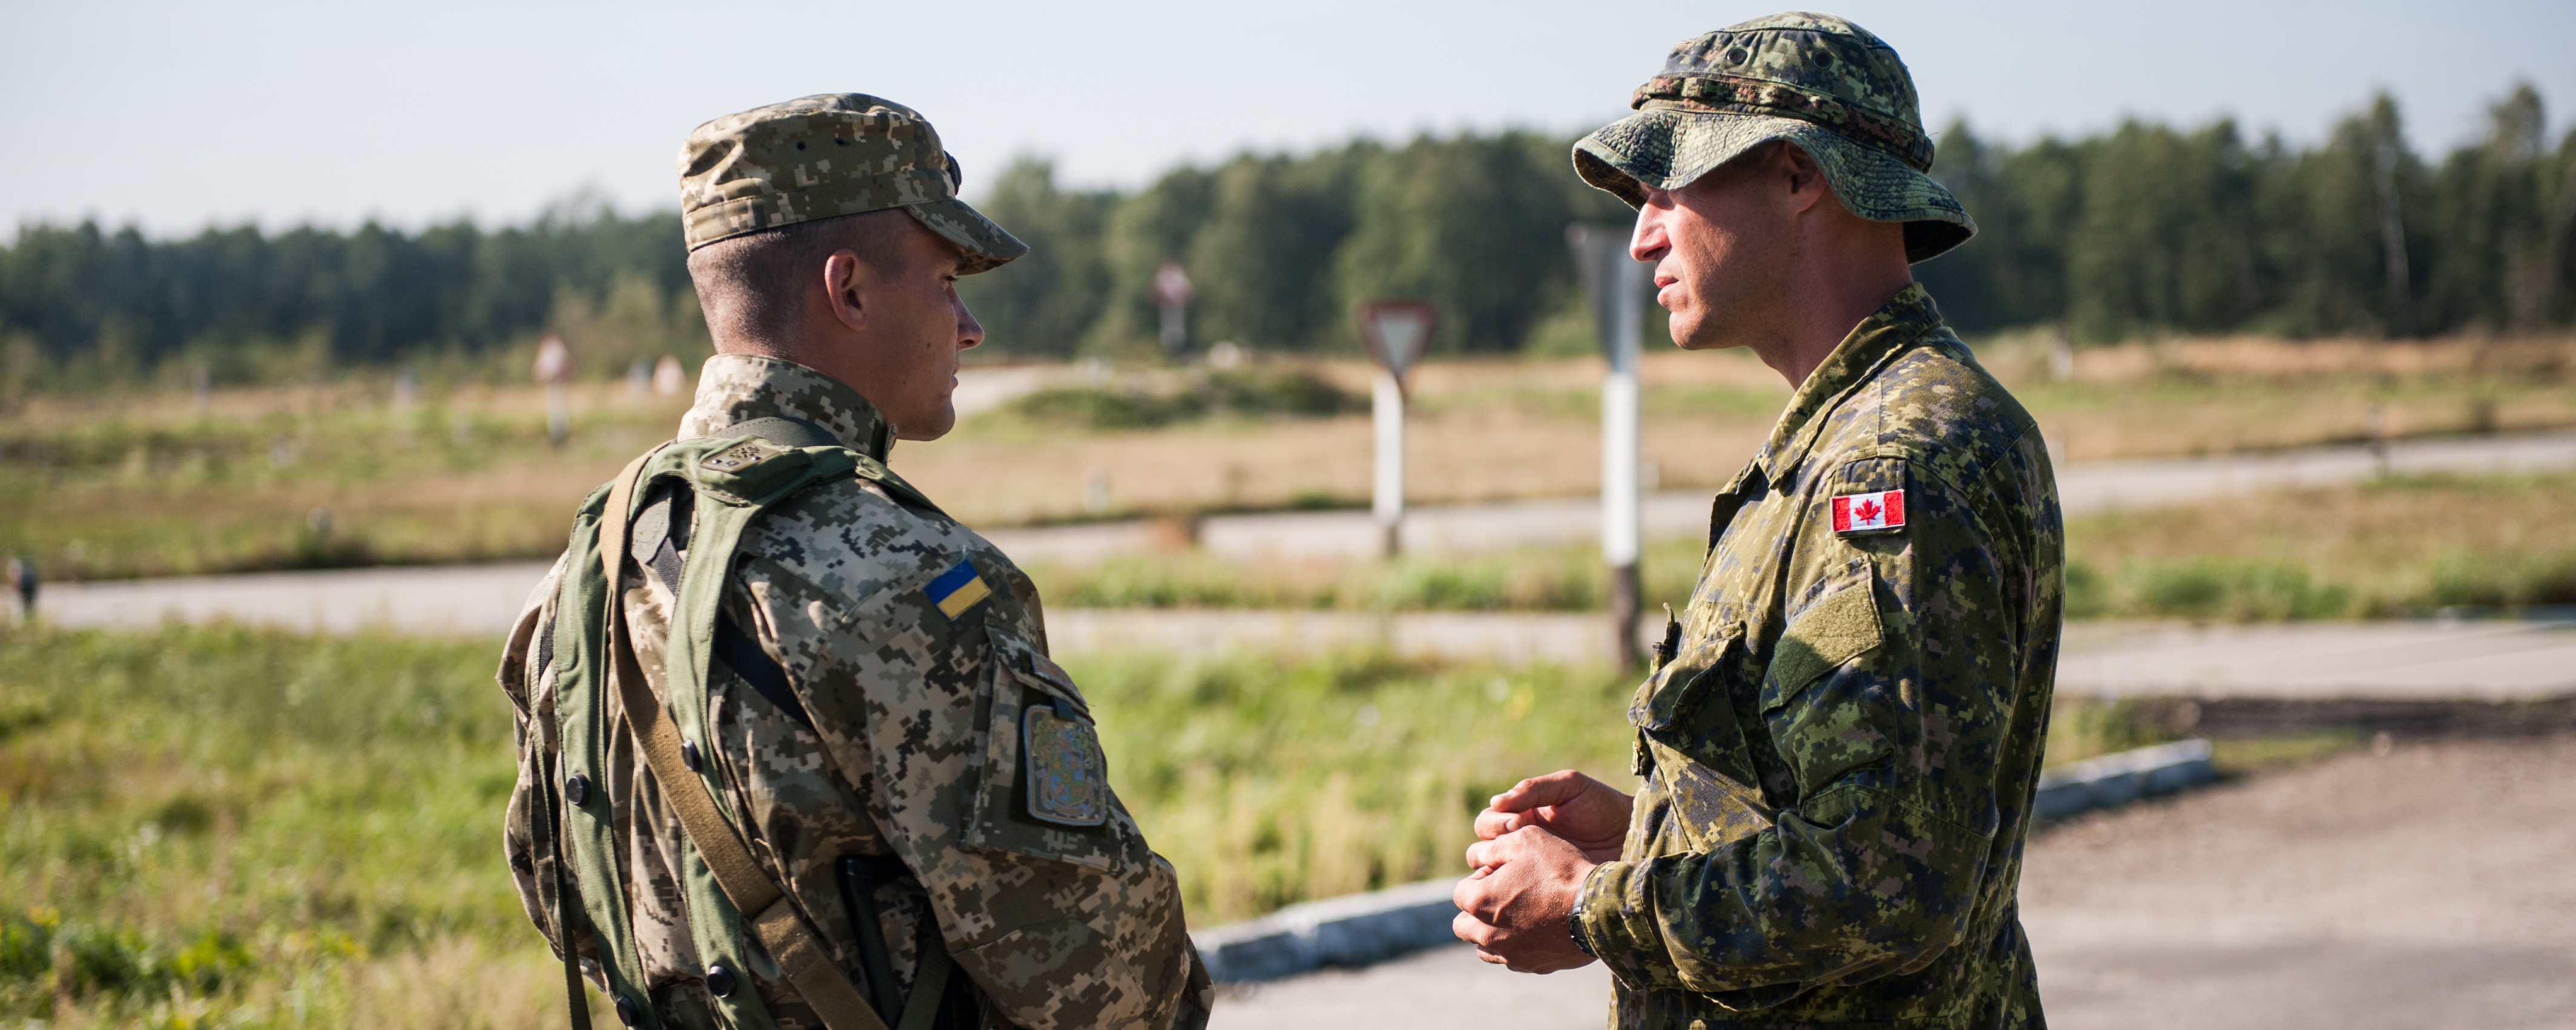 Slide - Two soldiers dressed in combat camouflage, one from the Canadian Army and the other from the Ukraine Army, are standing outside in a field of grass having a conversation.